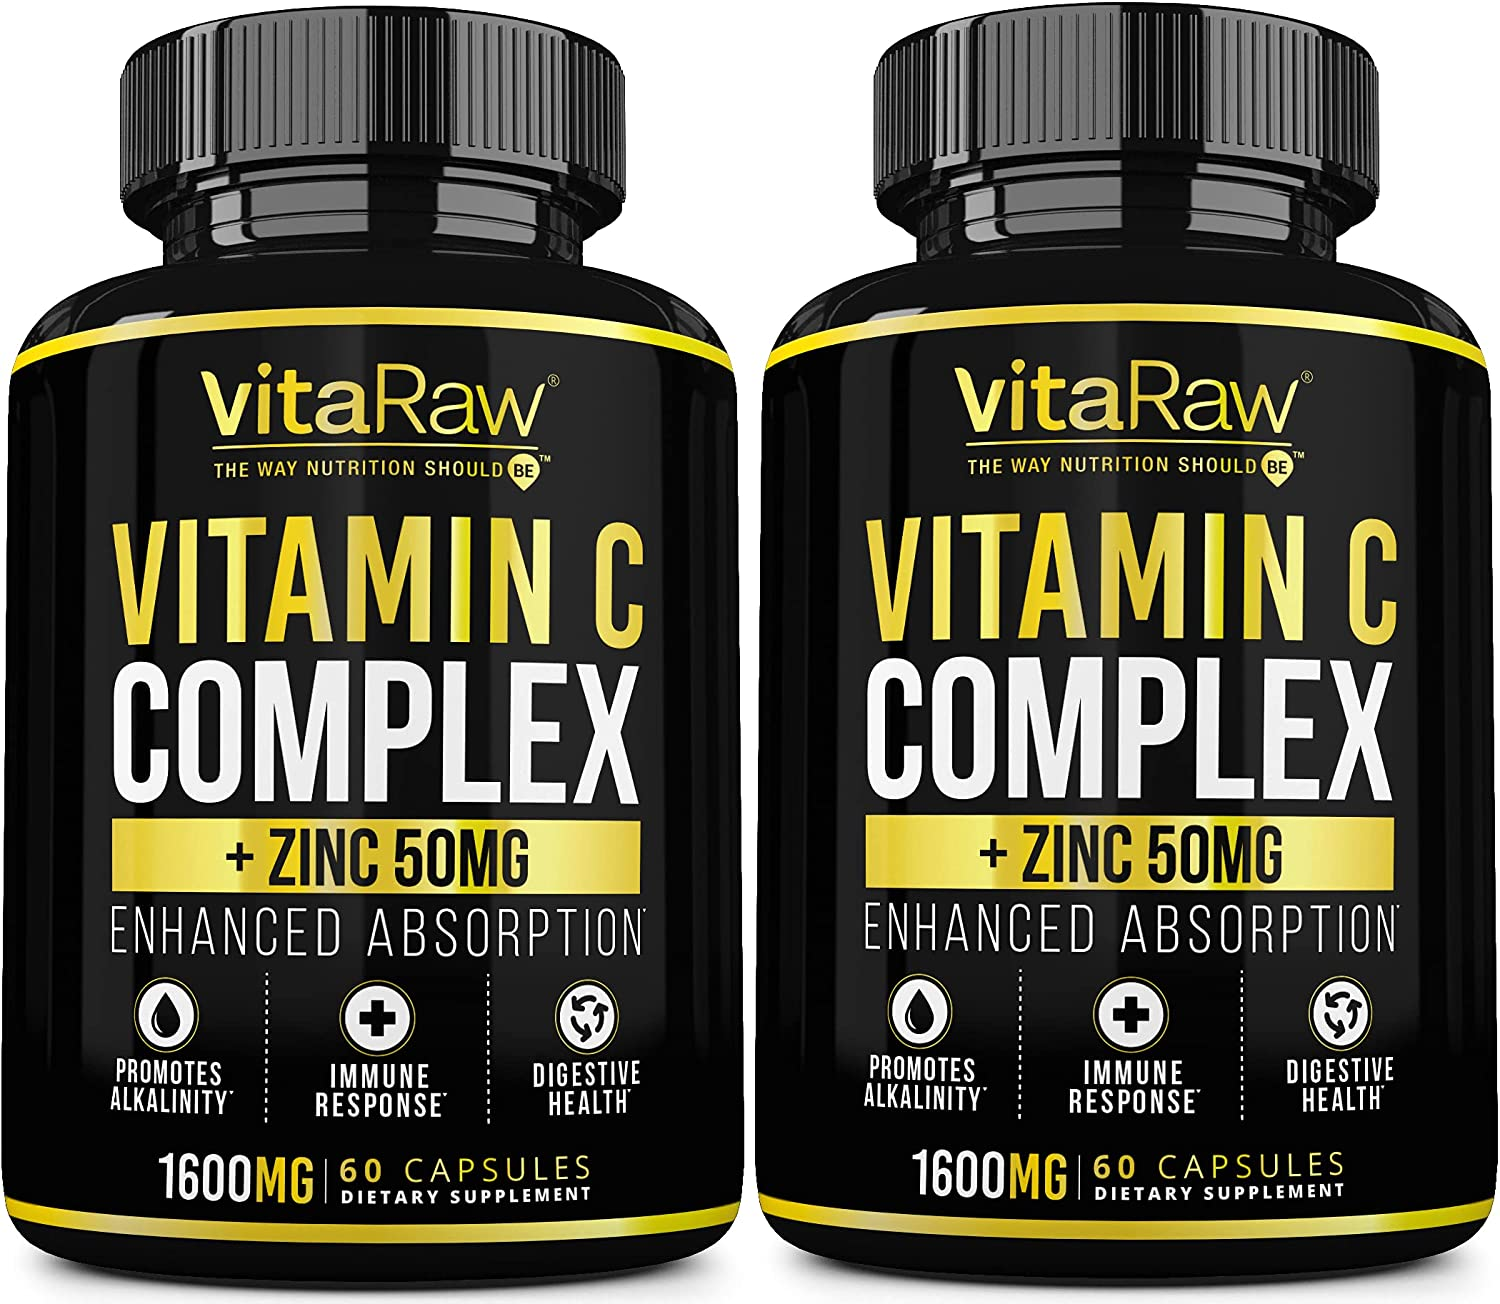 Vitamin C Supplement [2 Pack] 1600mg with Zinc 50mg |Highest Absorption| Vitamin C Immune Support Complex - Vitamin C Capsules & Zinc Vitamins for Adults | VIT C Immune Booster: Health & Personal Care